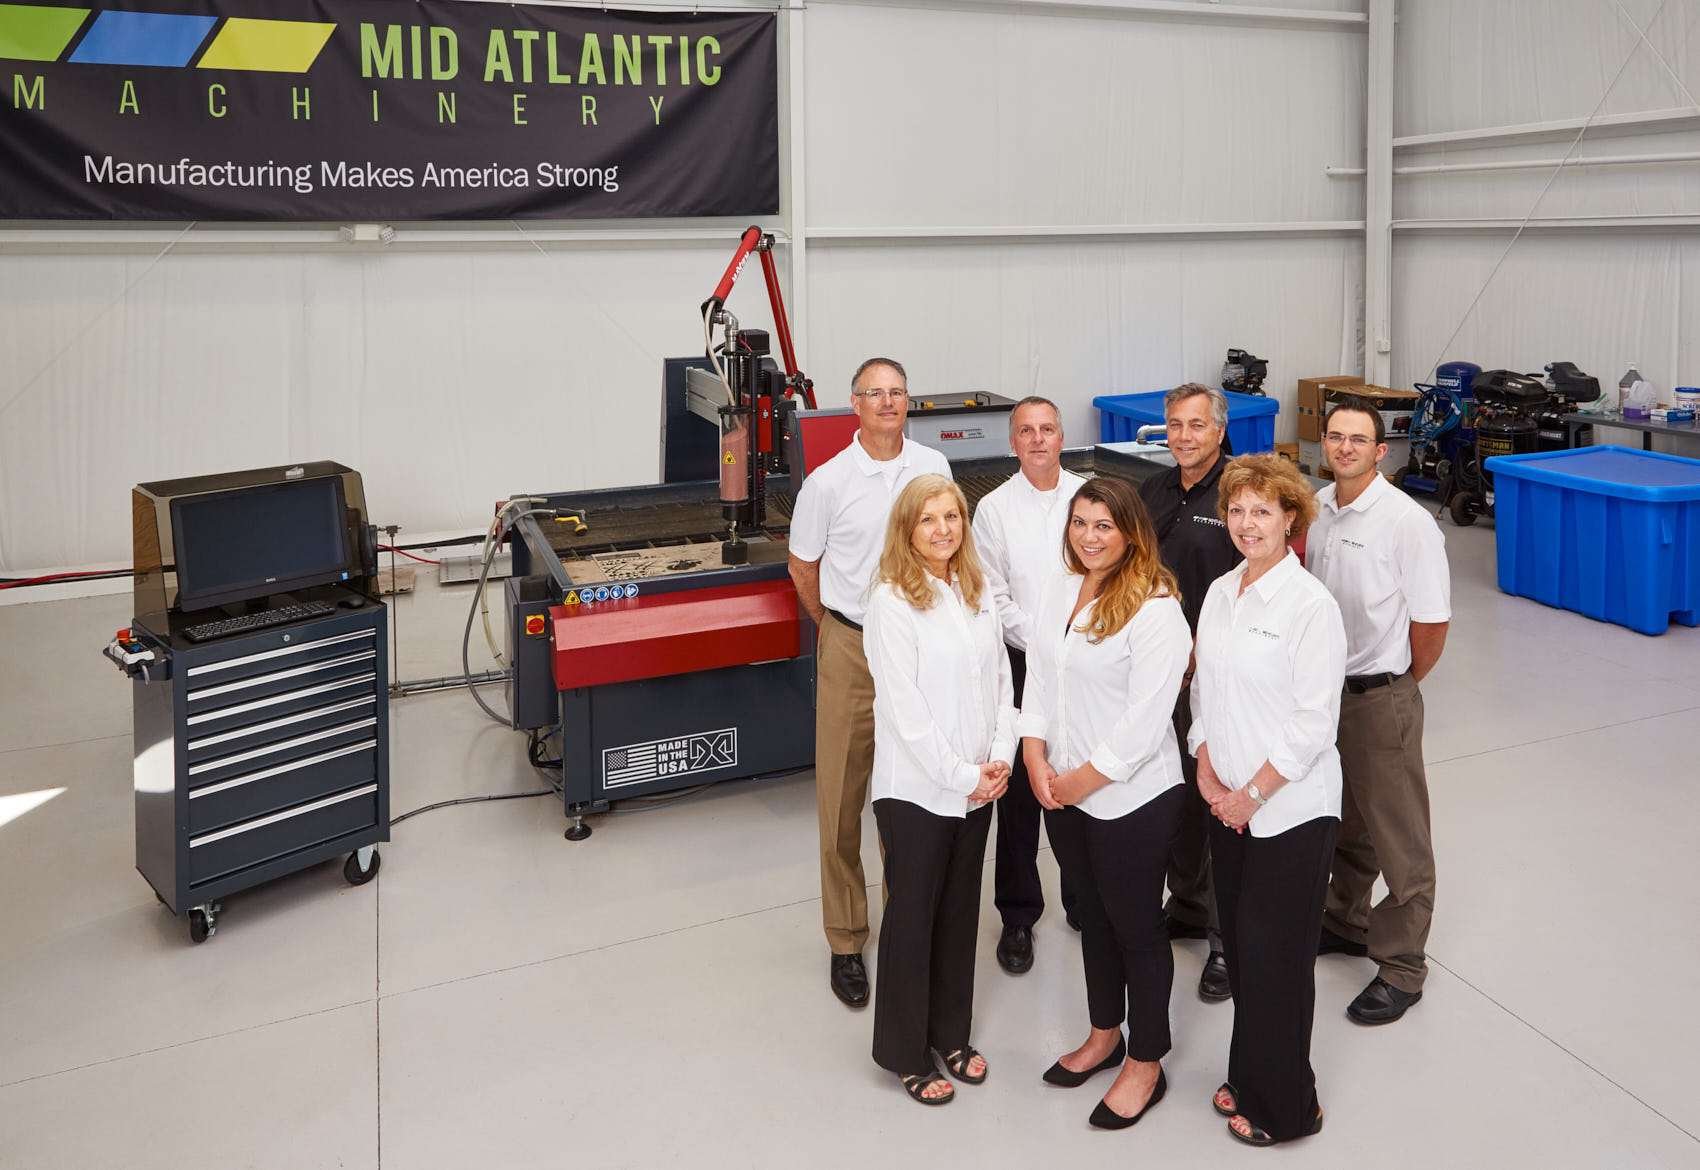 Mid Atlantic Machinery